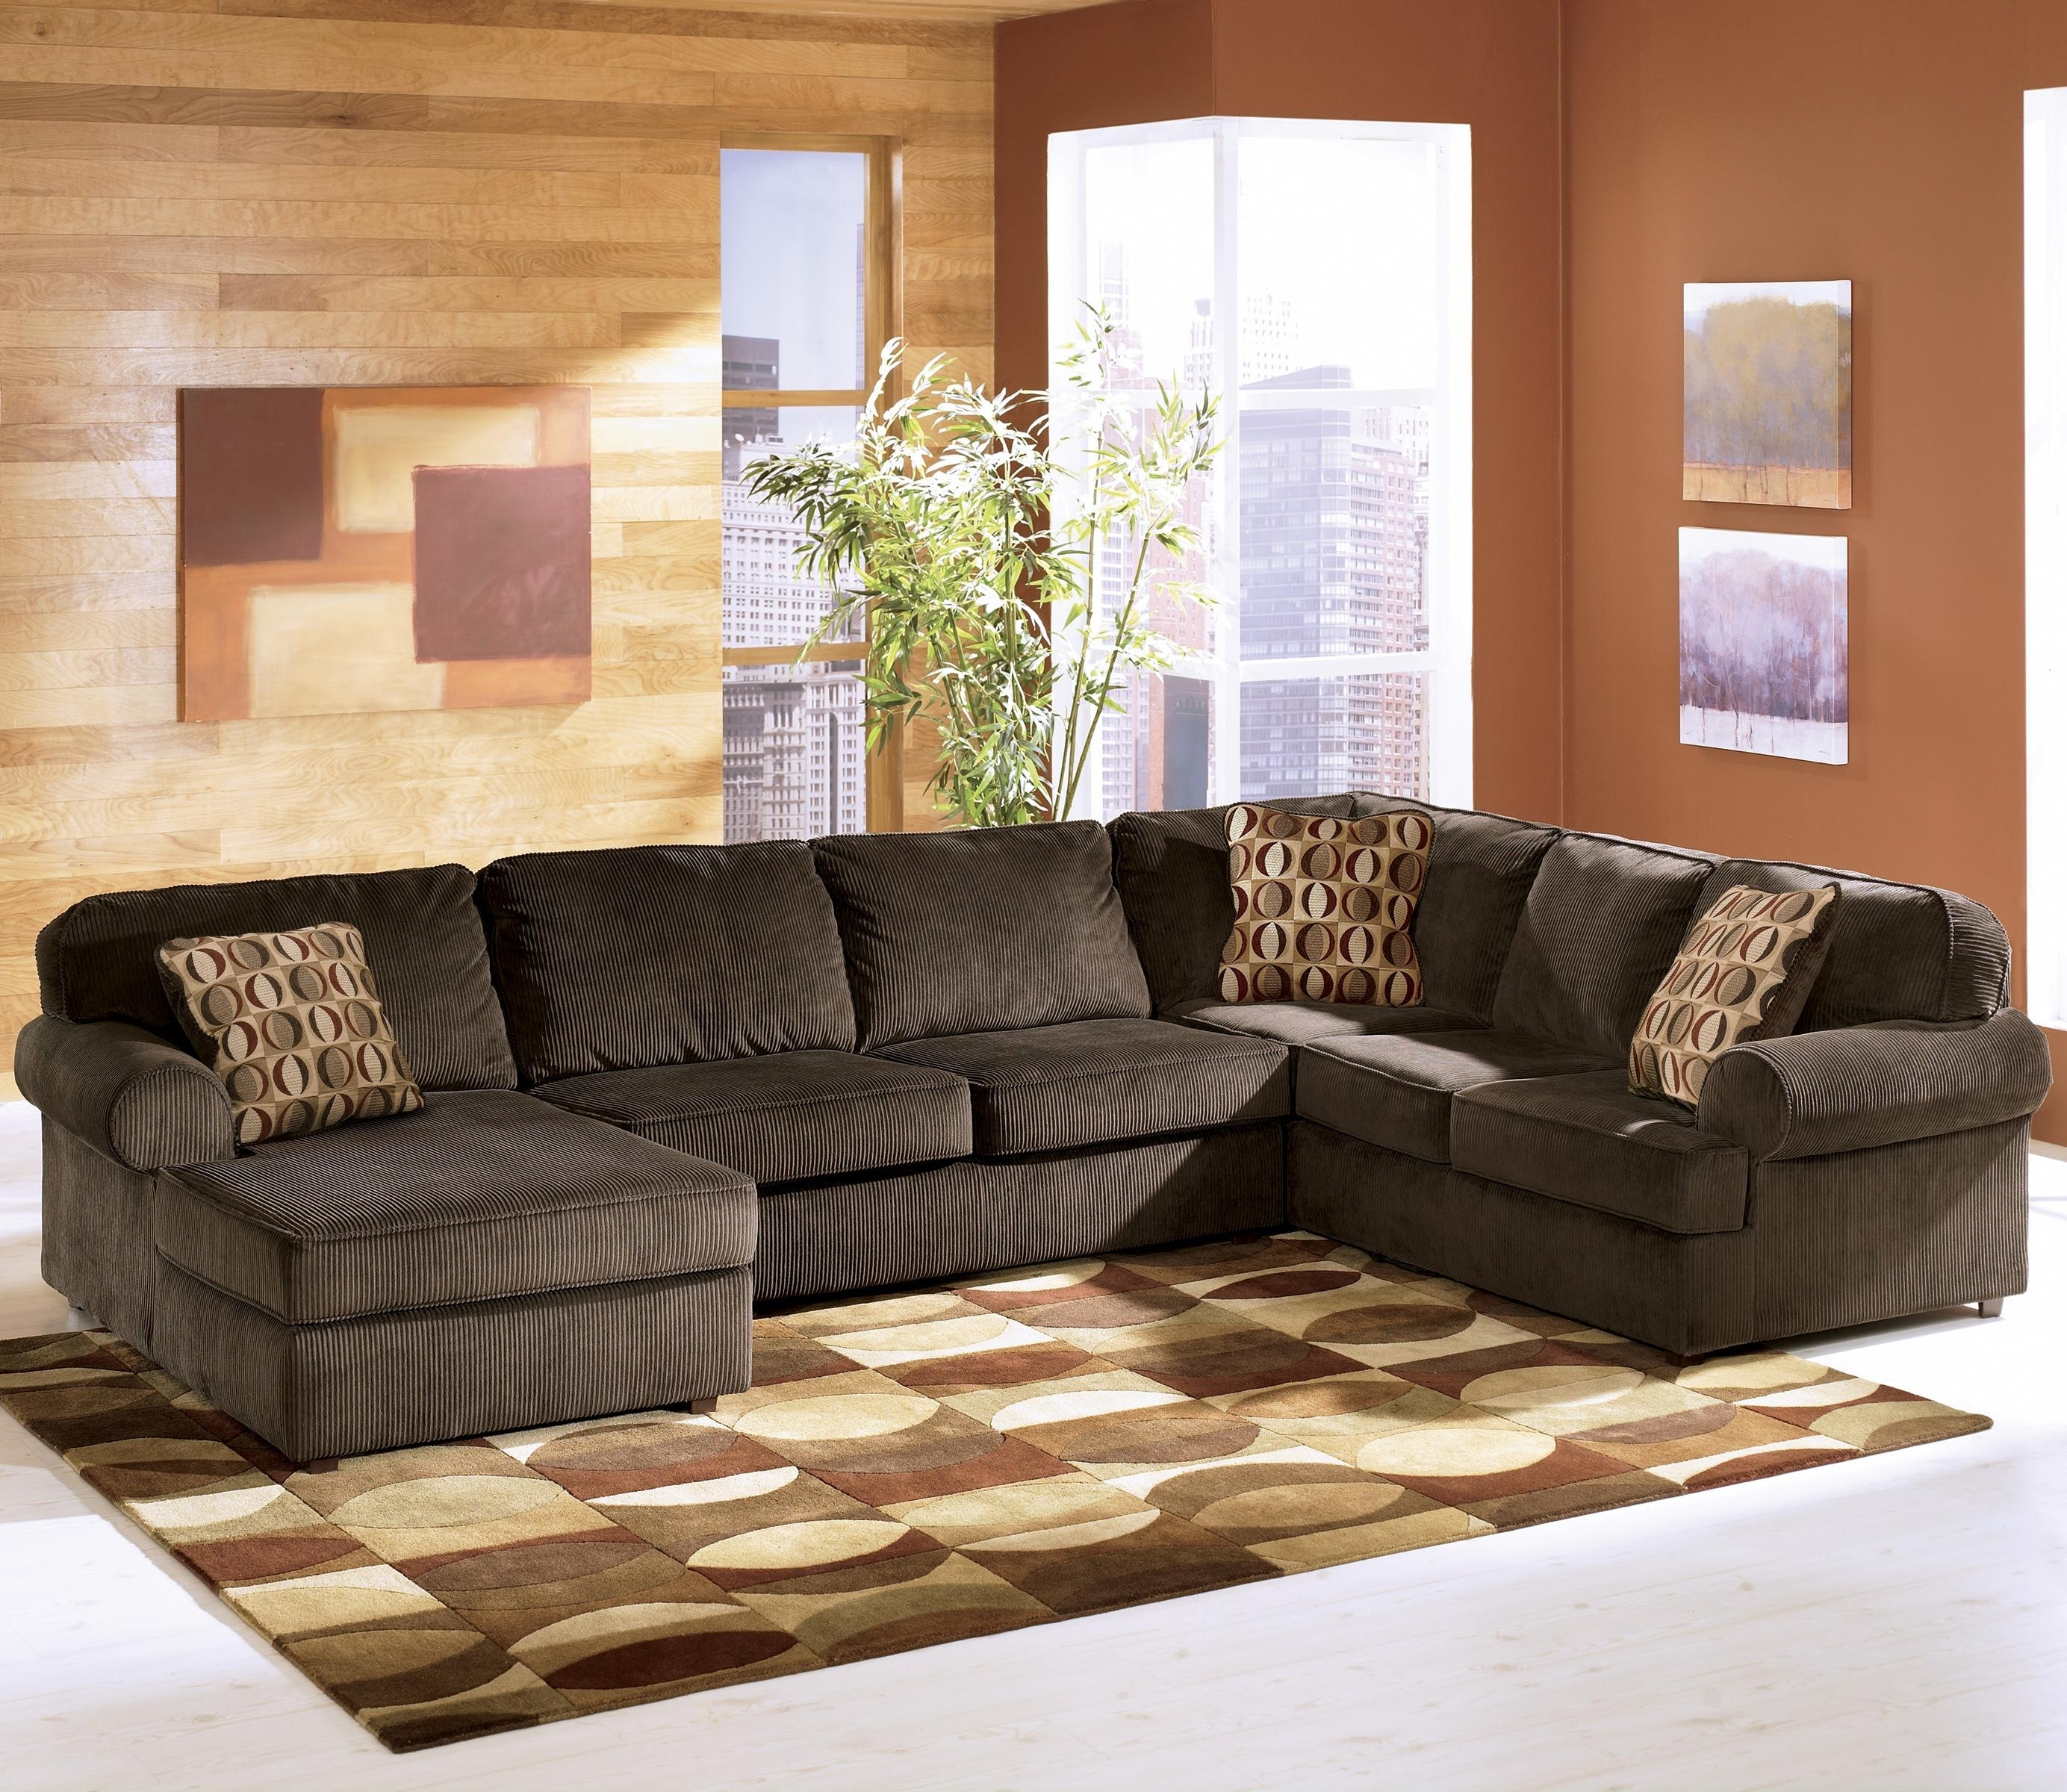 Ashley Furniture Regarding Lubbock Sectional Sofas (Gallery 5 of 20)